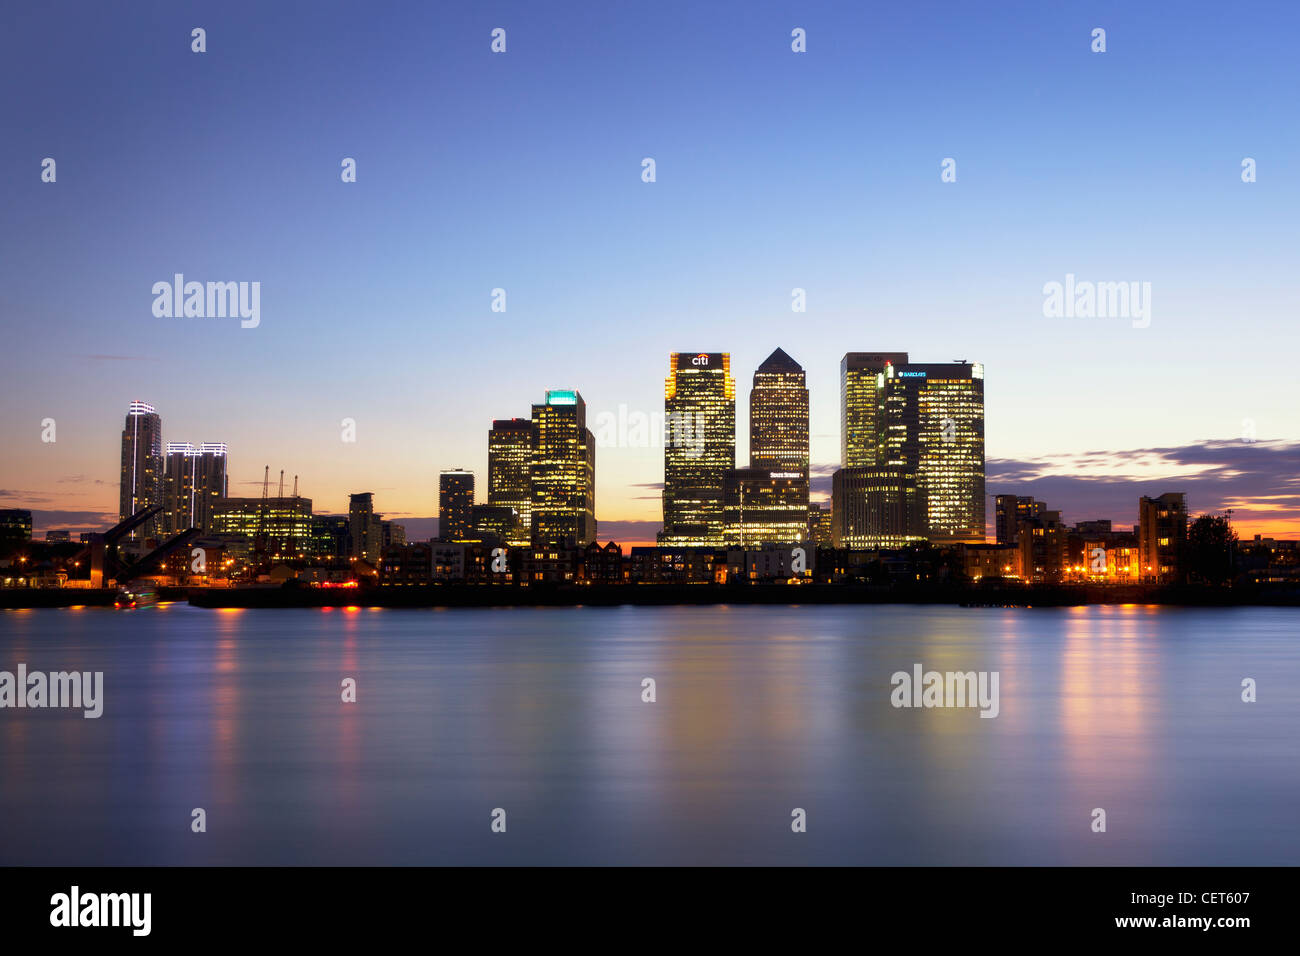 Canary Wharf at Dusk, stitch panoramic of Canary Wharf the light coming on and reflecting in the Thames. - Stock Image